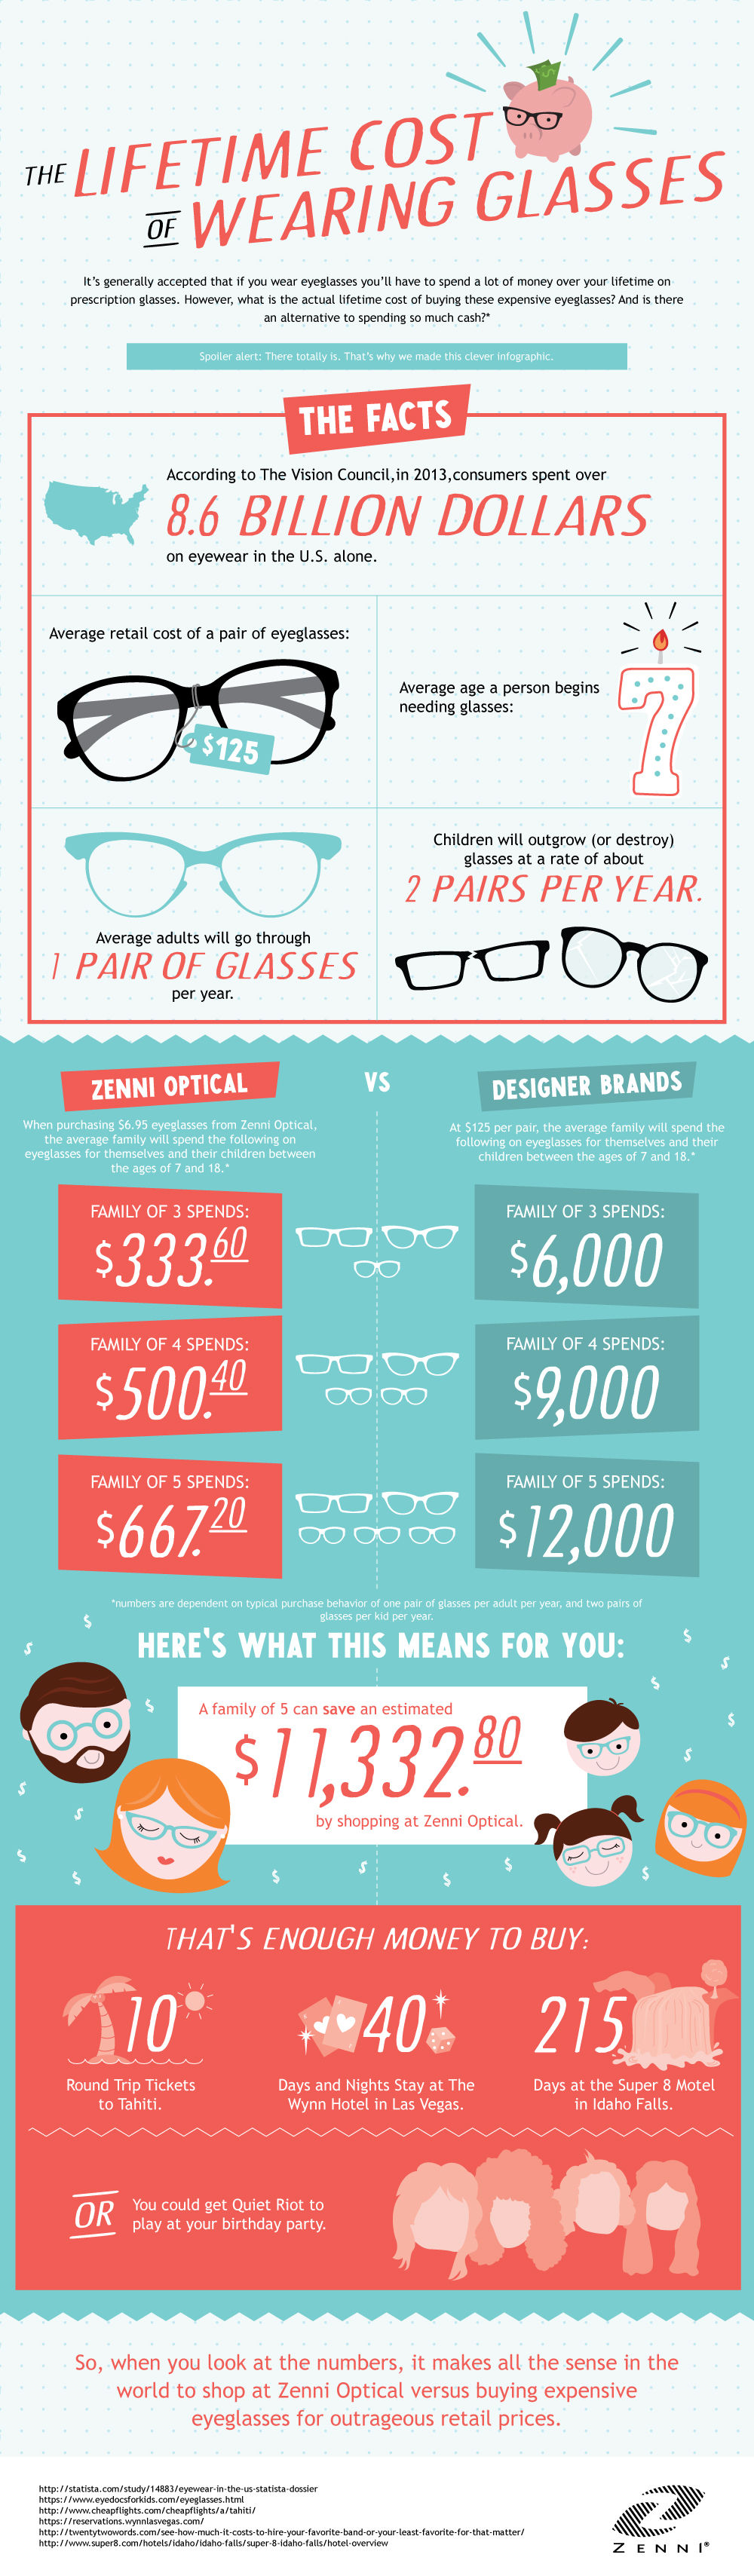 The Lifetime Cost of Wearing Glasses